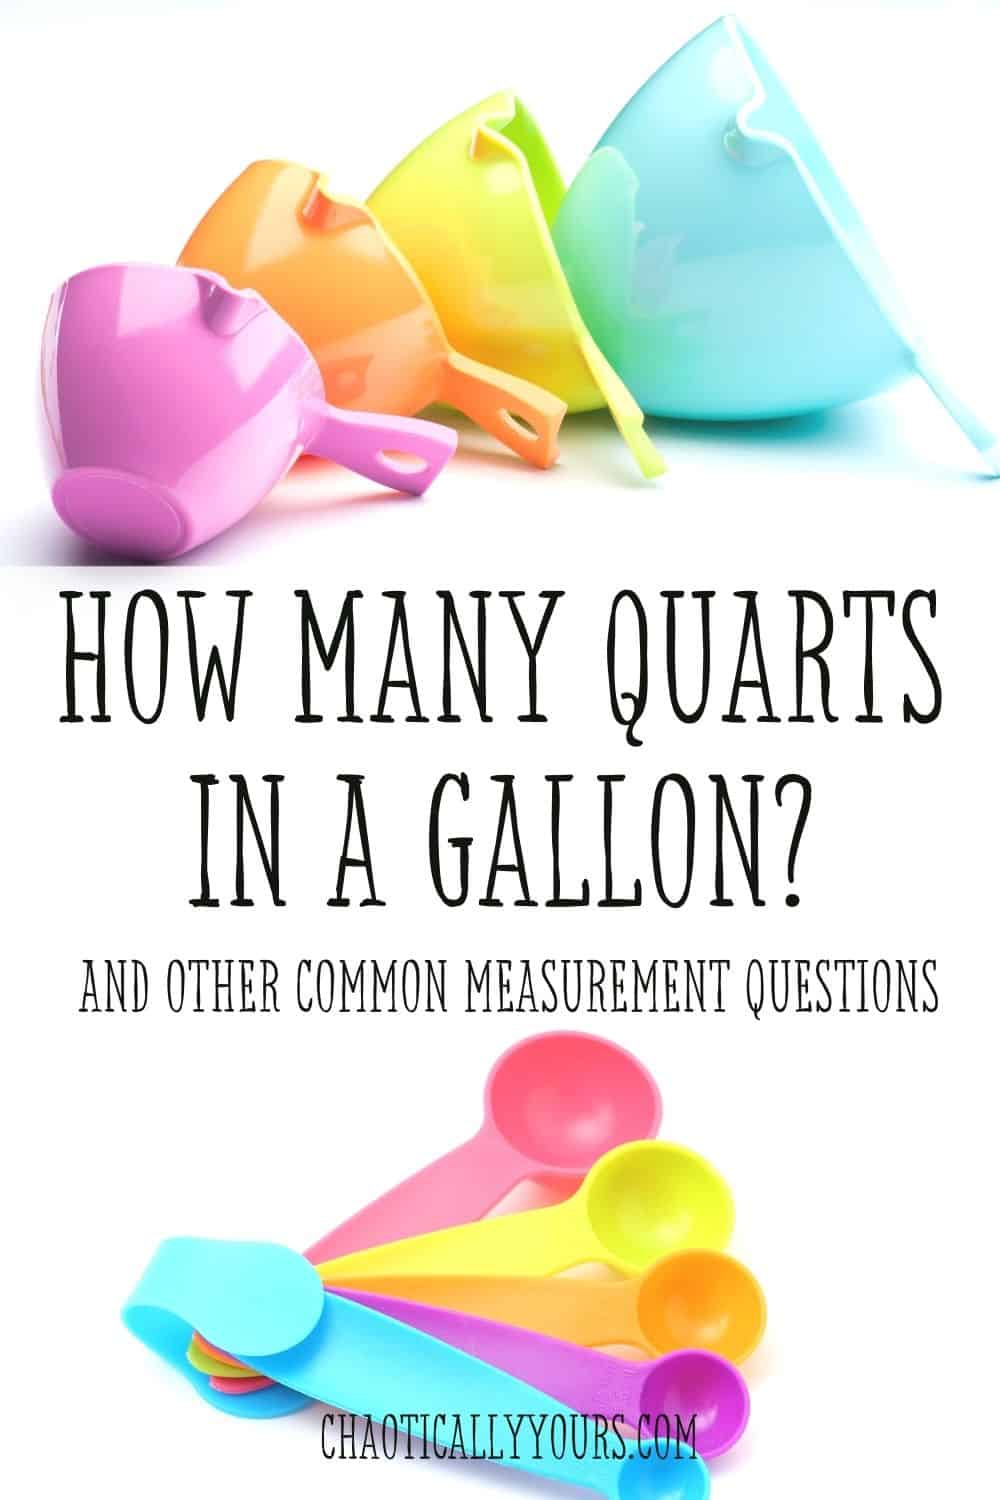 how many quarts in a gallon pin image